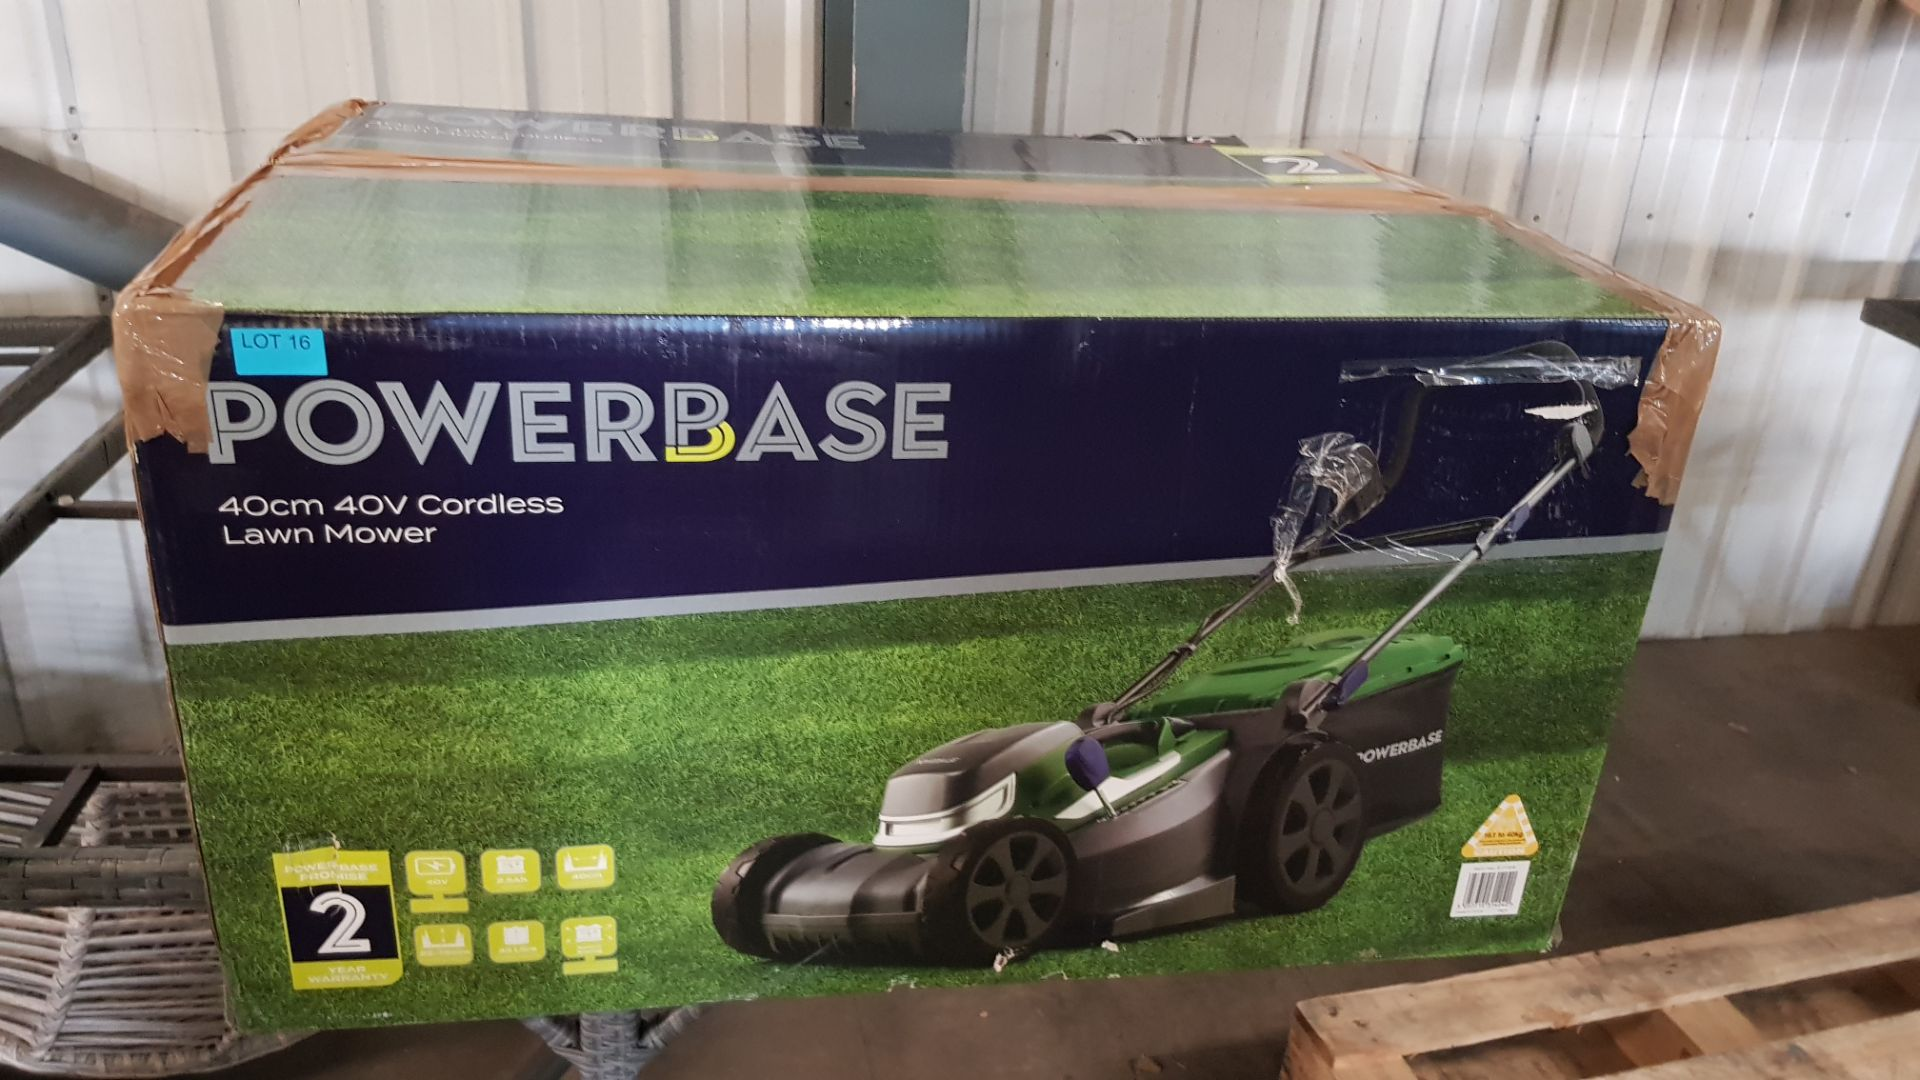 (P9) 1x Powerbase 37cm 40V Cordless Lawn Mower. RRP £199.00. Unit Appears Clean, As New & Unused. - Image 3 of 5